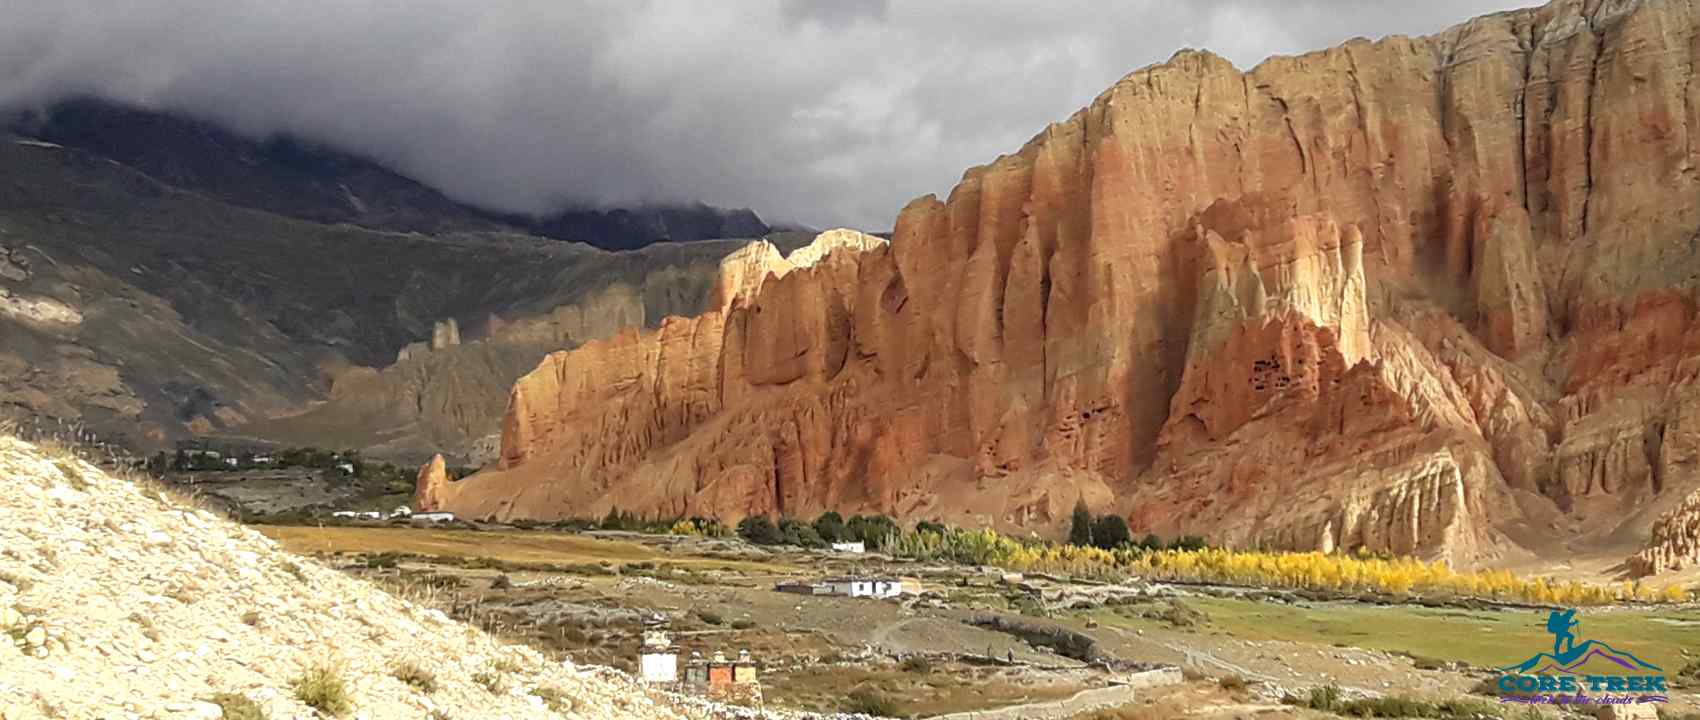 Upper Mustang Overland Tour In Nepal